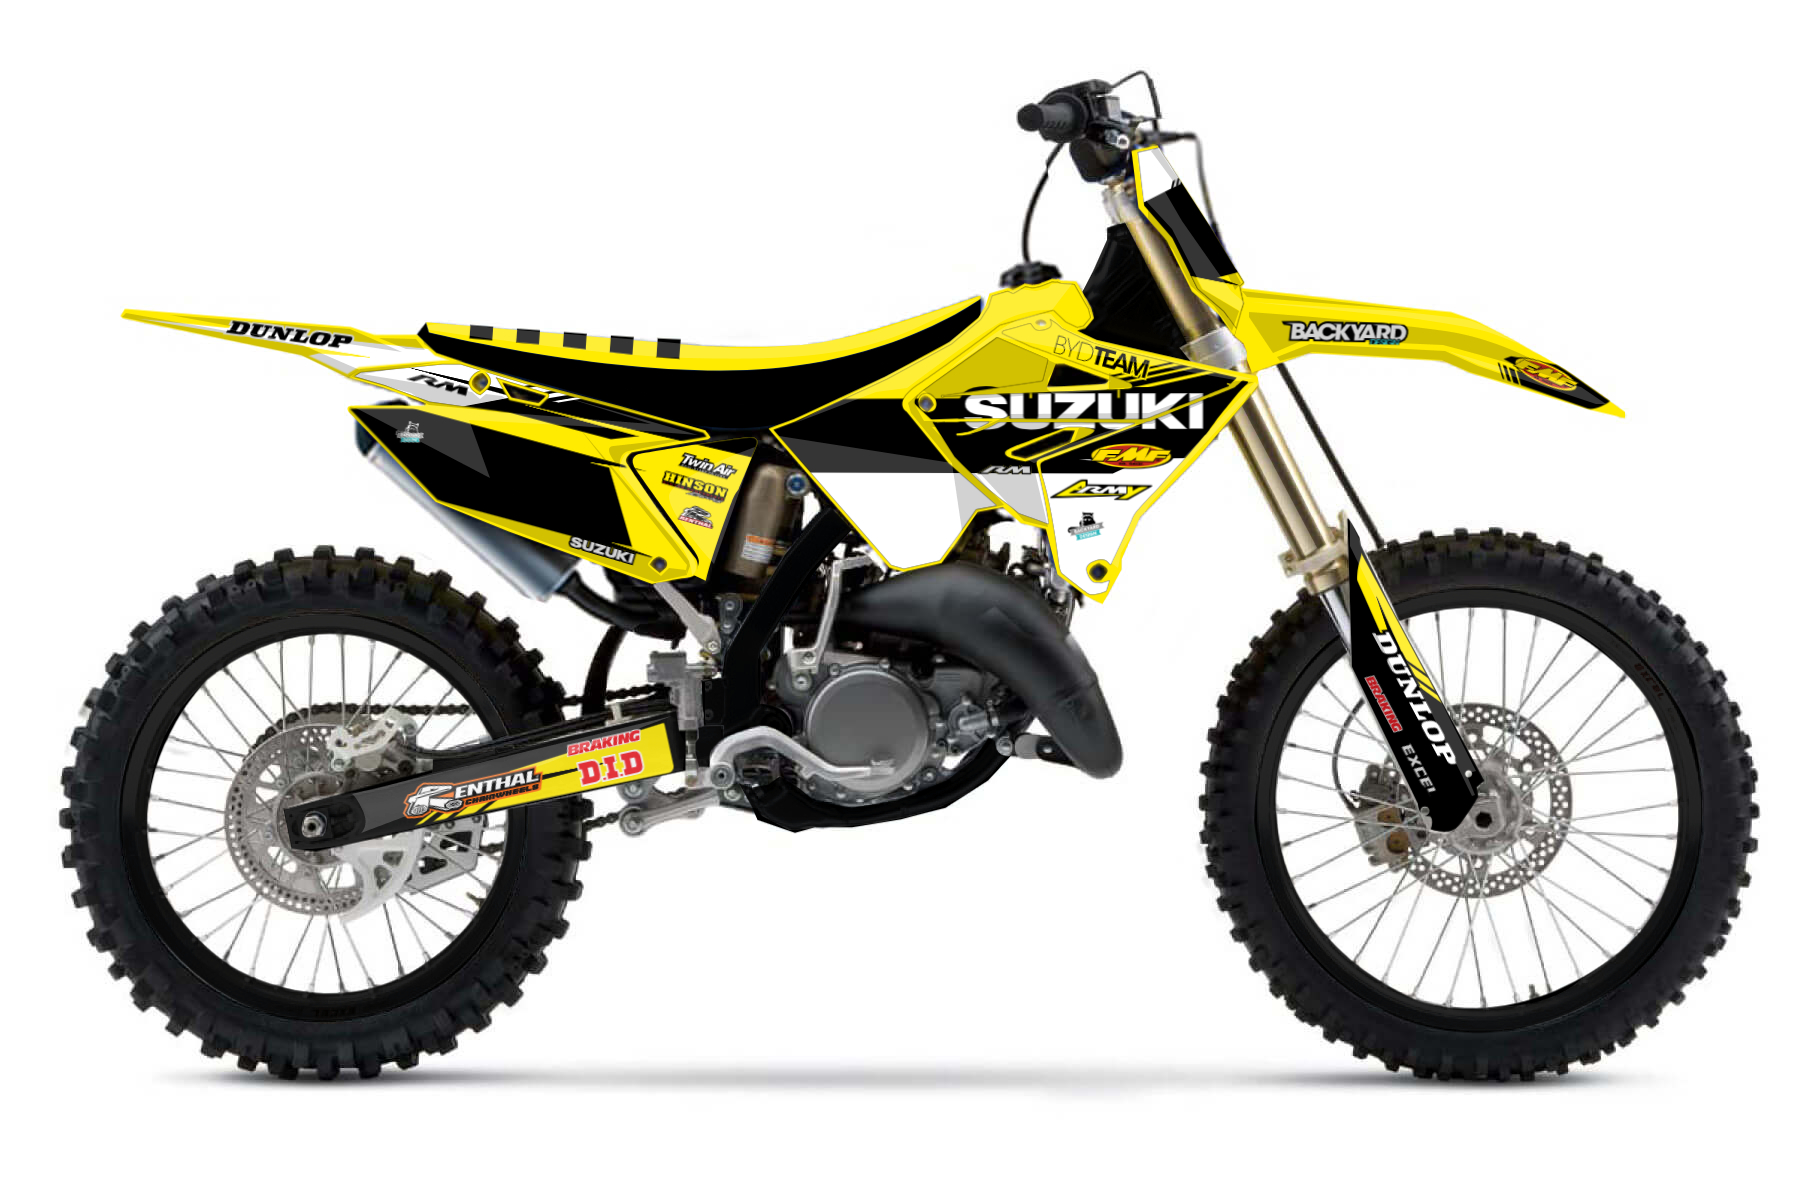 Suzuki RM250 Polisport Restyle MX Graphic Kits  If you restyled your Suzuki RM250 with the Polisport restyle kit, we have the right designs for your graphic kit waiting for you. Just choose your basic design and start creating.